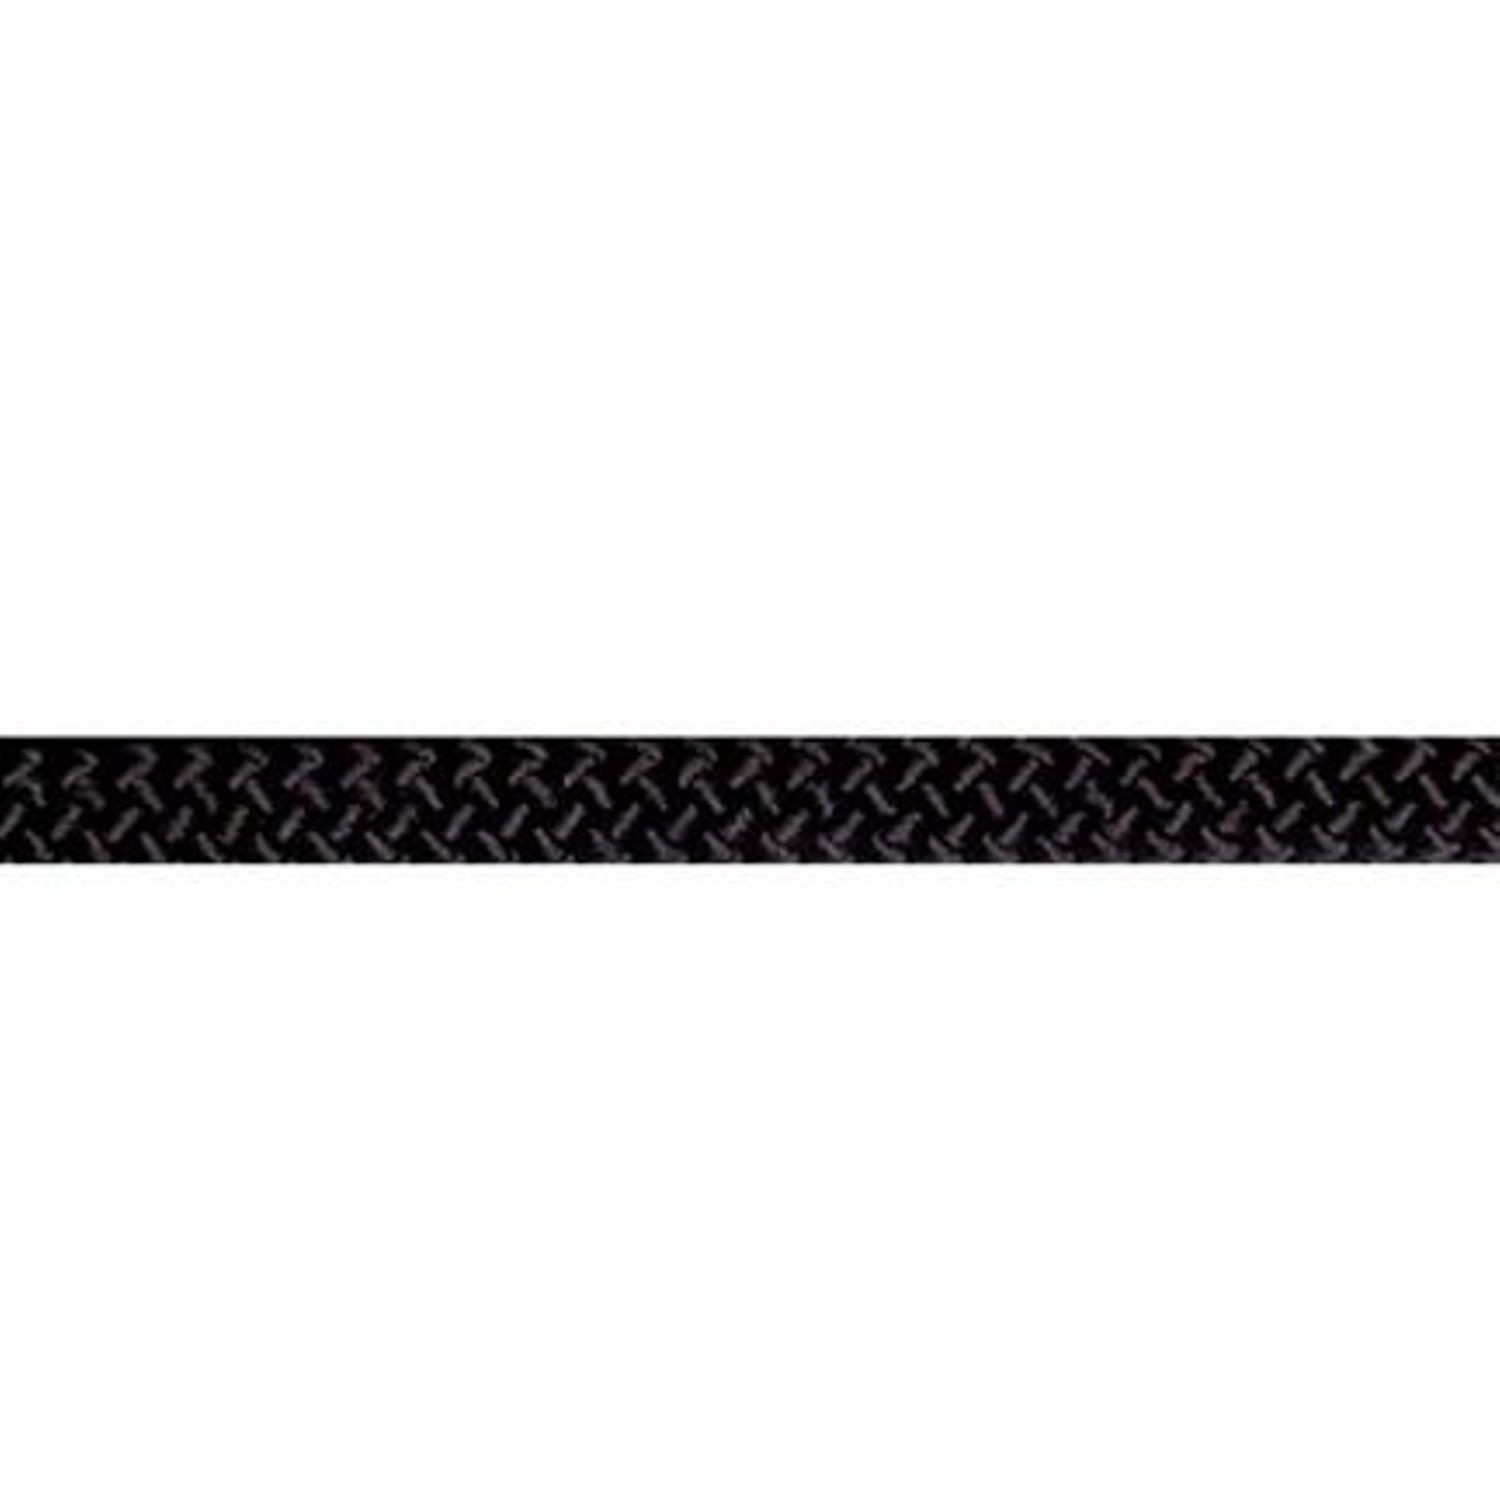 12.5 MM BLACK STATIC KERNMANTLE ROPE, 1200 FT.